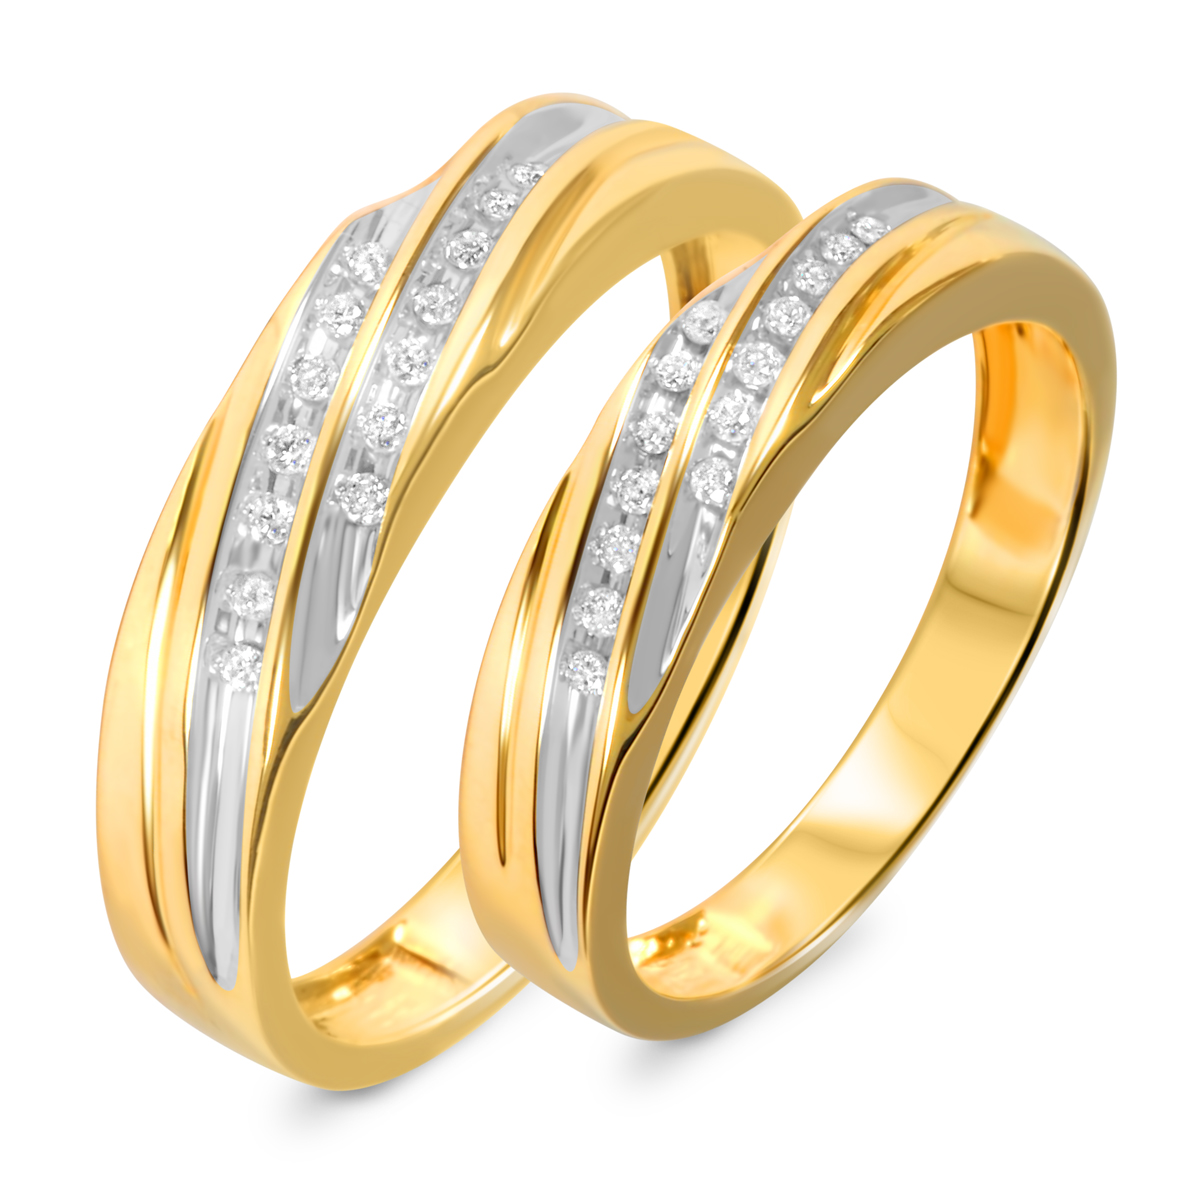 1/7 Carat T.W. Diamond His And Hers Wedding Band Set 10K Yellow Gold